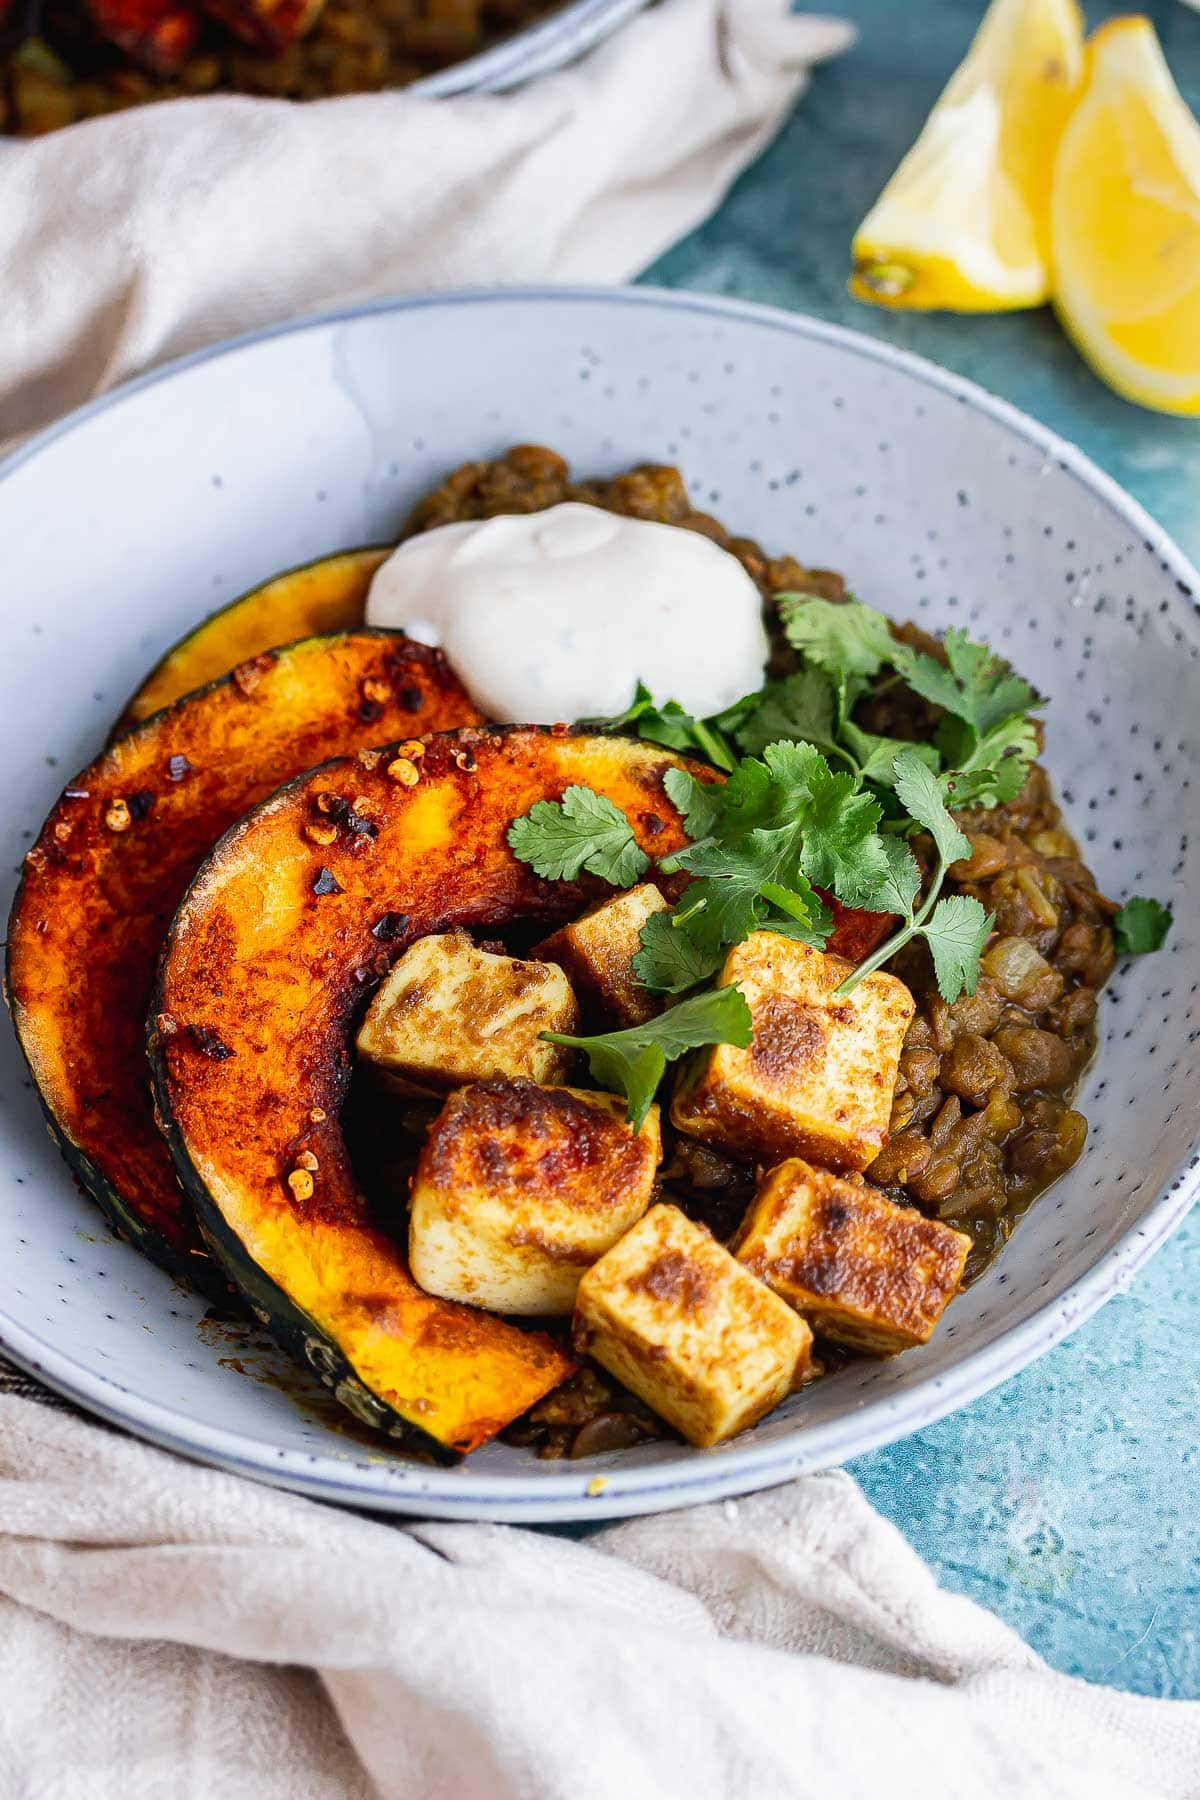 Blue bowl of lentils topped with caramelised squash with a cloth